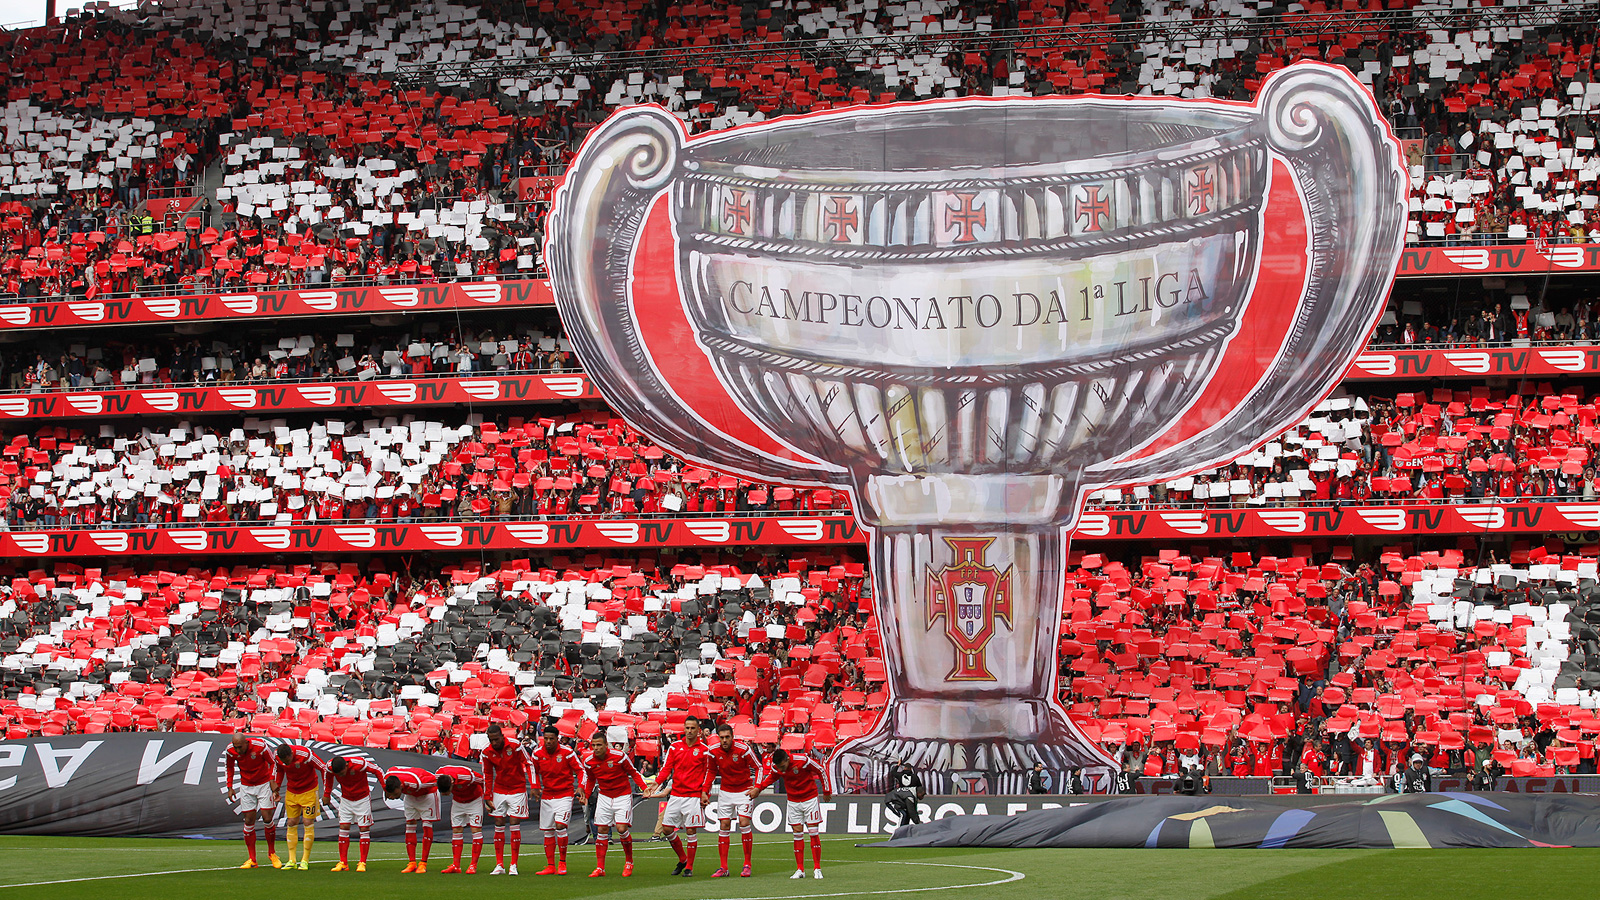 Fans at Benfica's Estadio da Luz remind rival Porto who the Primeira Liga reigning champion is during an April 2015 match in Portugal.